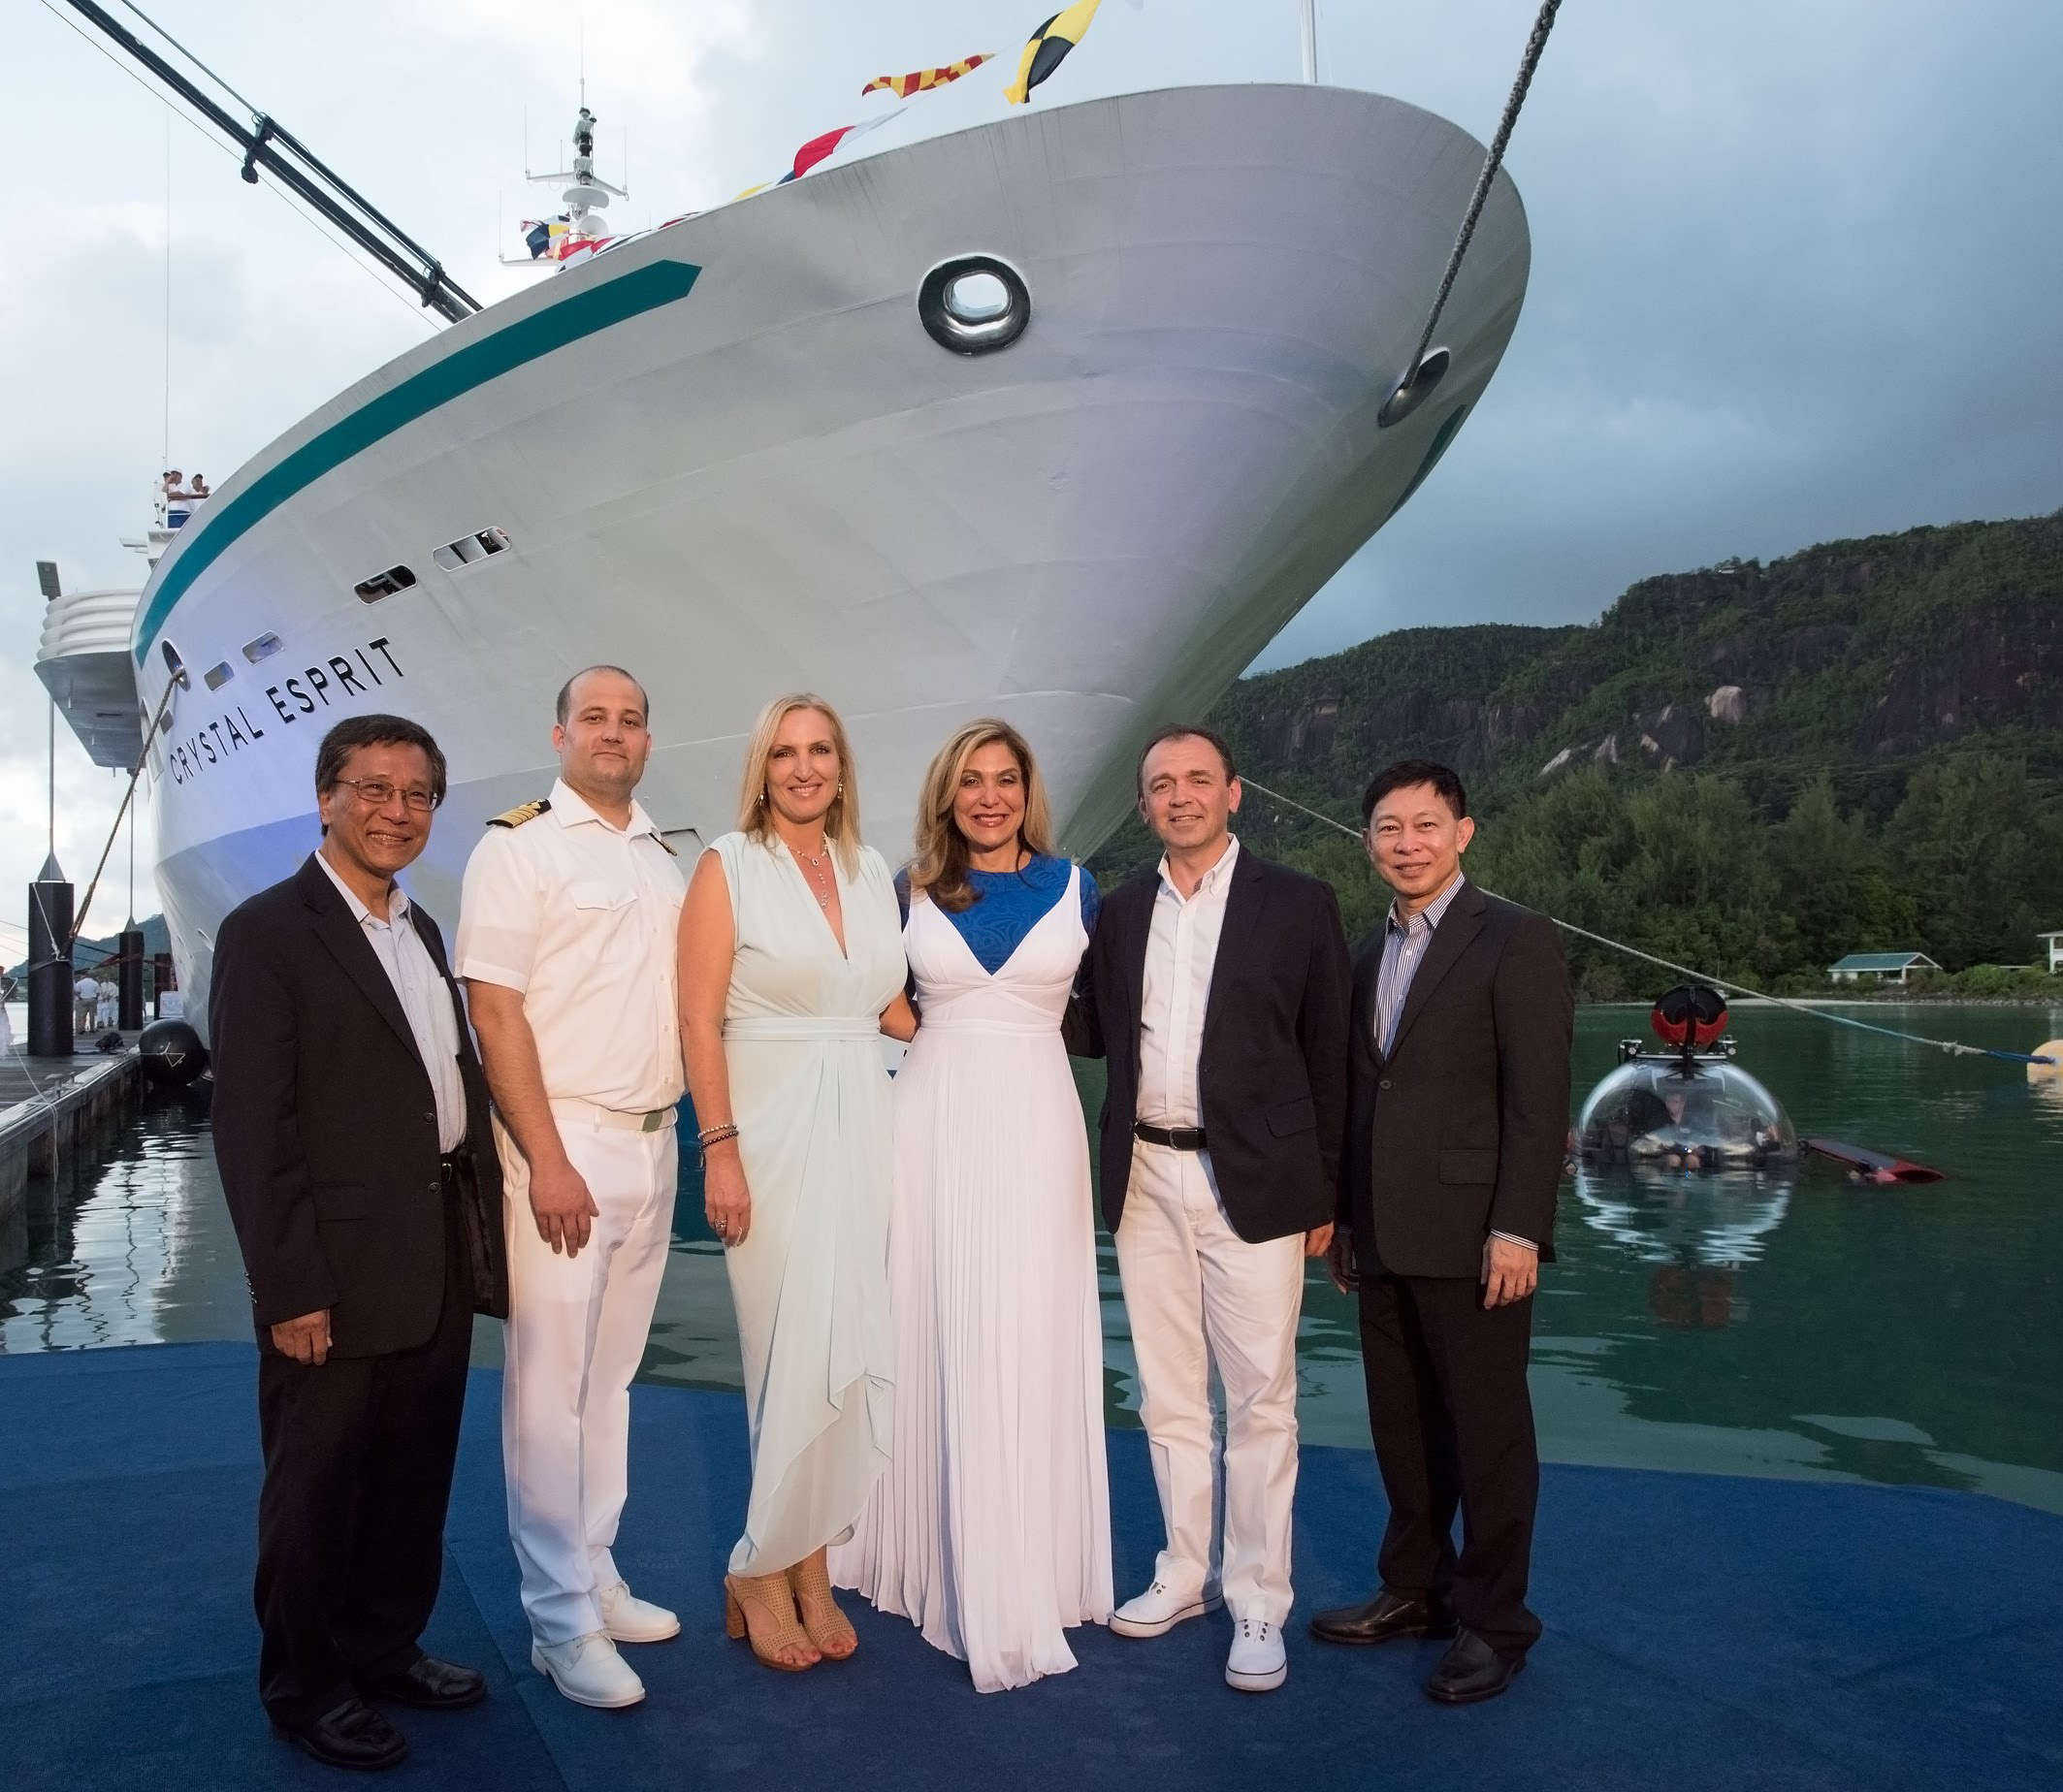 Left to Right Crystal Chairman, Tan Sri Lim Kok Thay, Crystal Esprit Captain, Nenad Willheim, Crystal Esprit Godmother, Lady Gaenor Anne Meakes; Crystal President & CEO, Edie Rodriguez; Crystal Cruises COO Thomas Mazloum; Special Advisor, Colin Au.